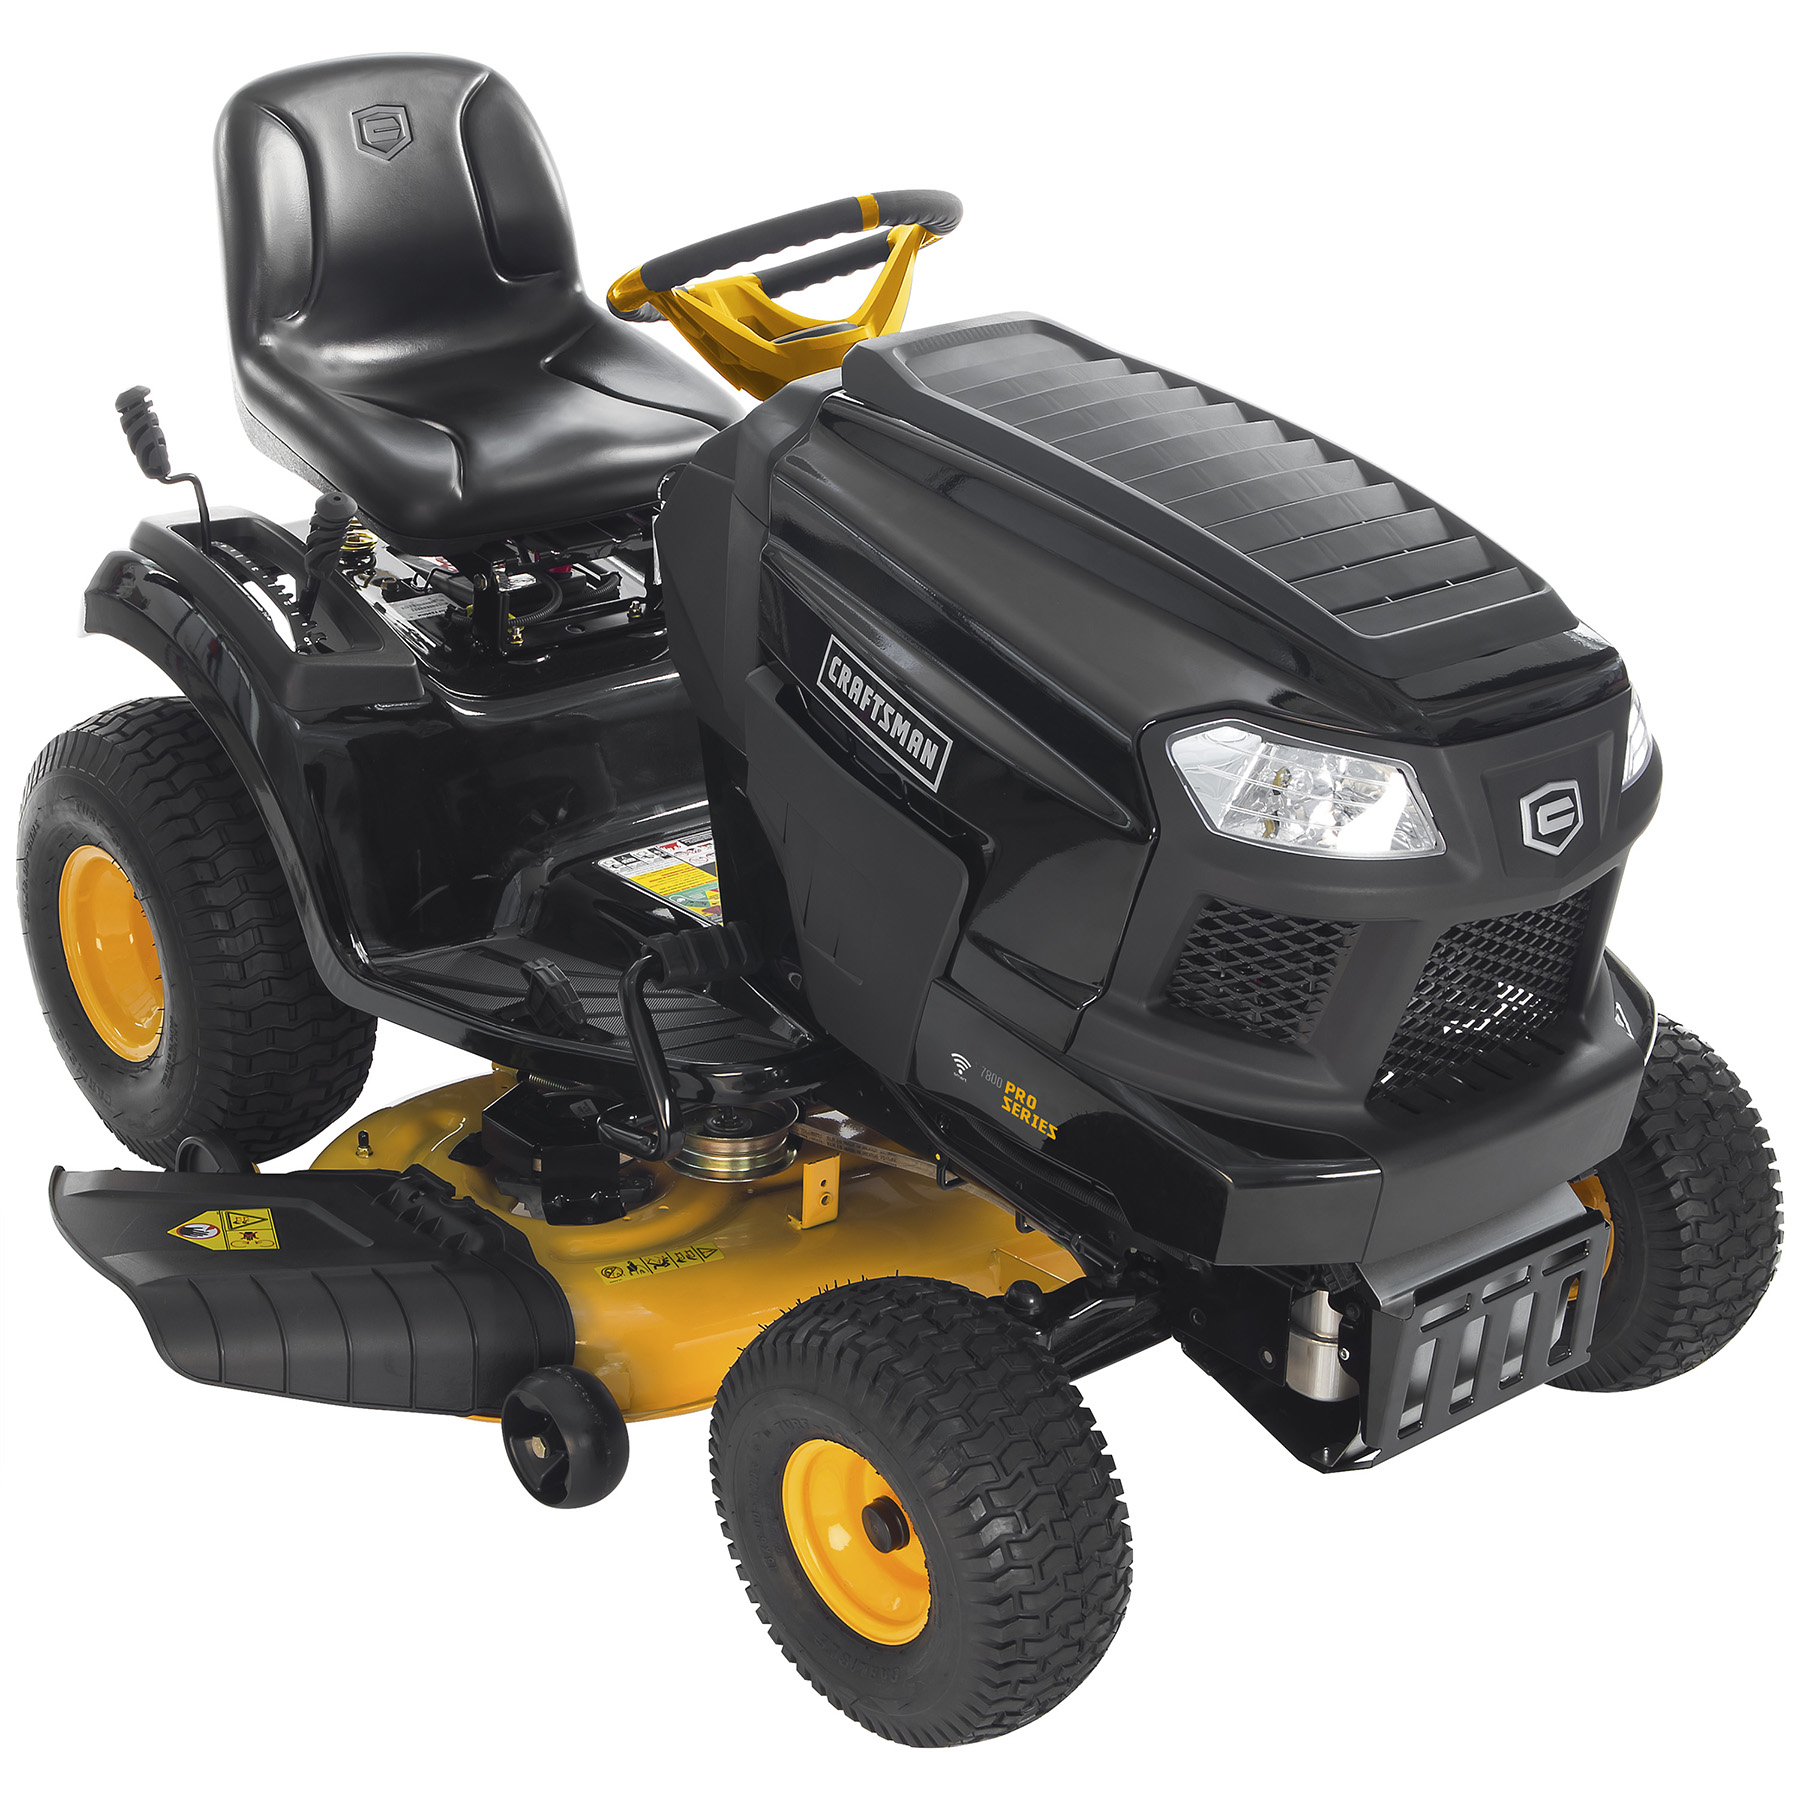 medium resolution of craftsman proseries 27038 42 20 hp kohler v twin riding mower with smart lawn technology